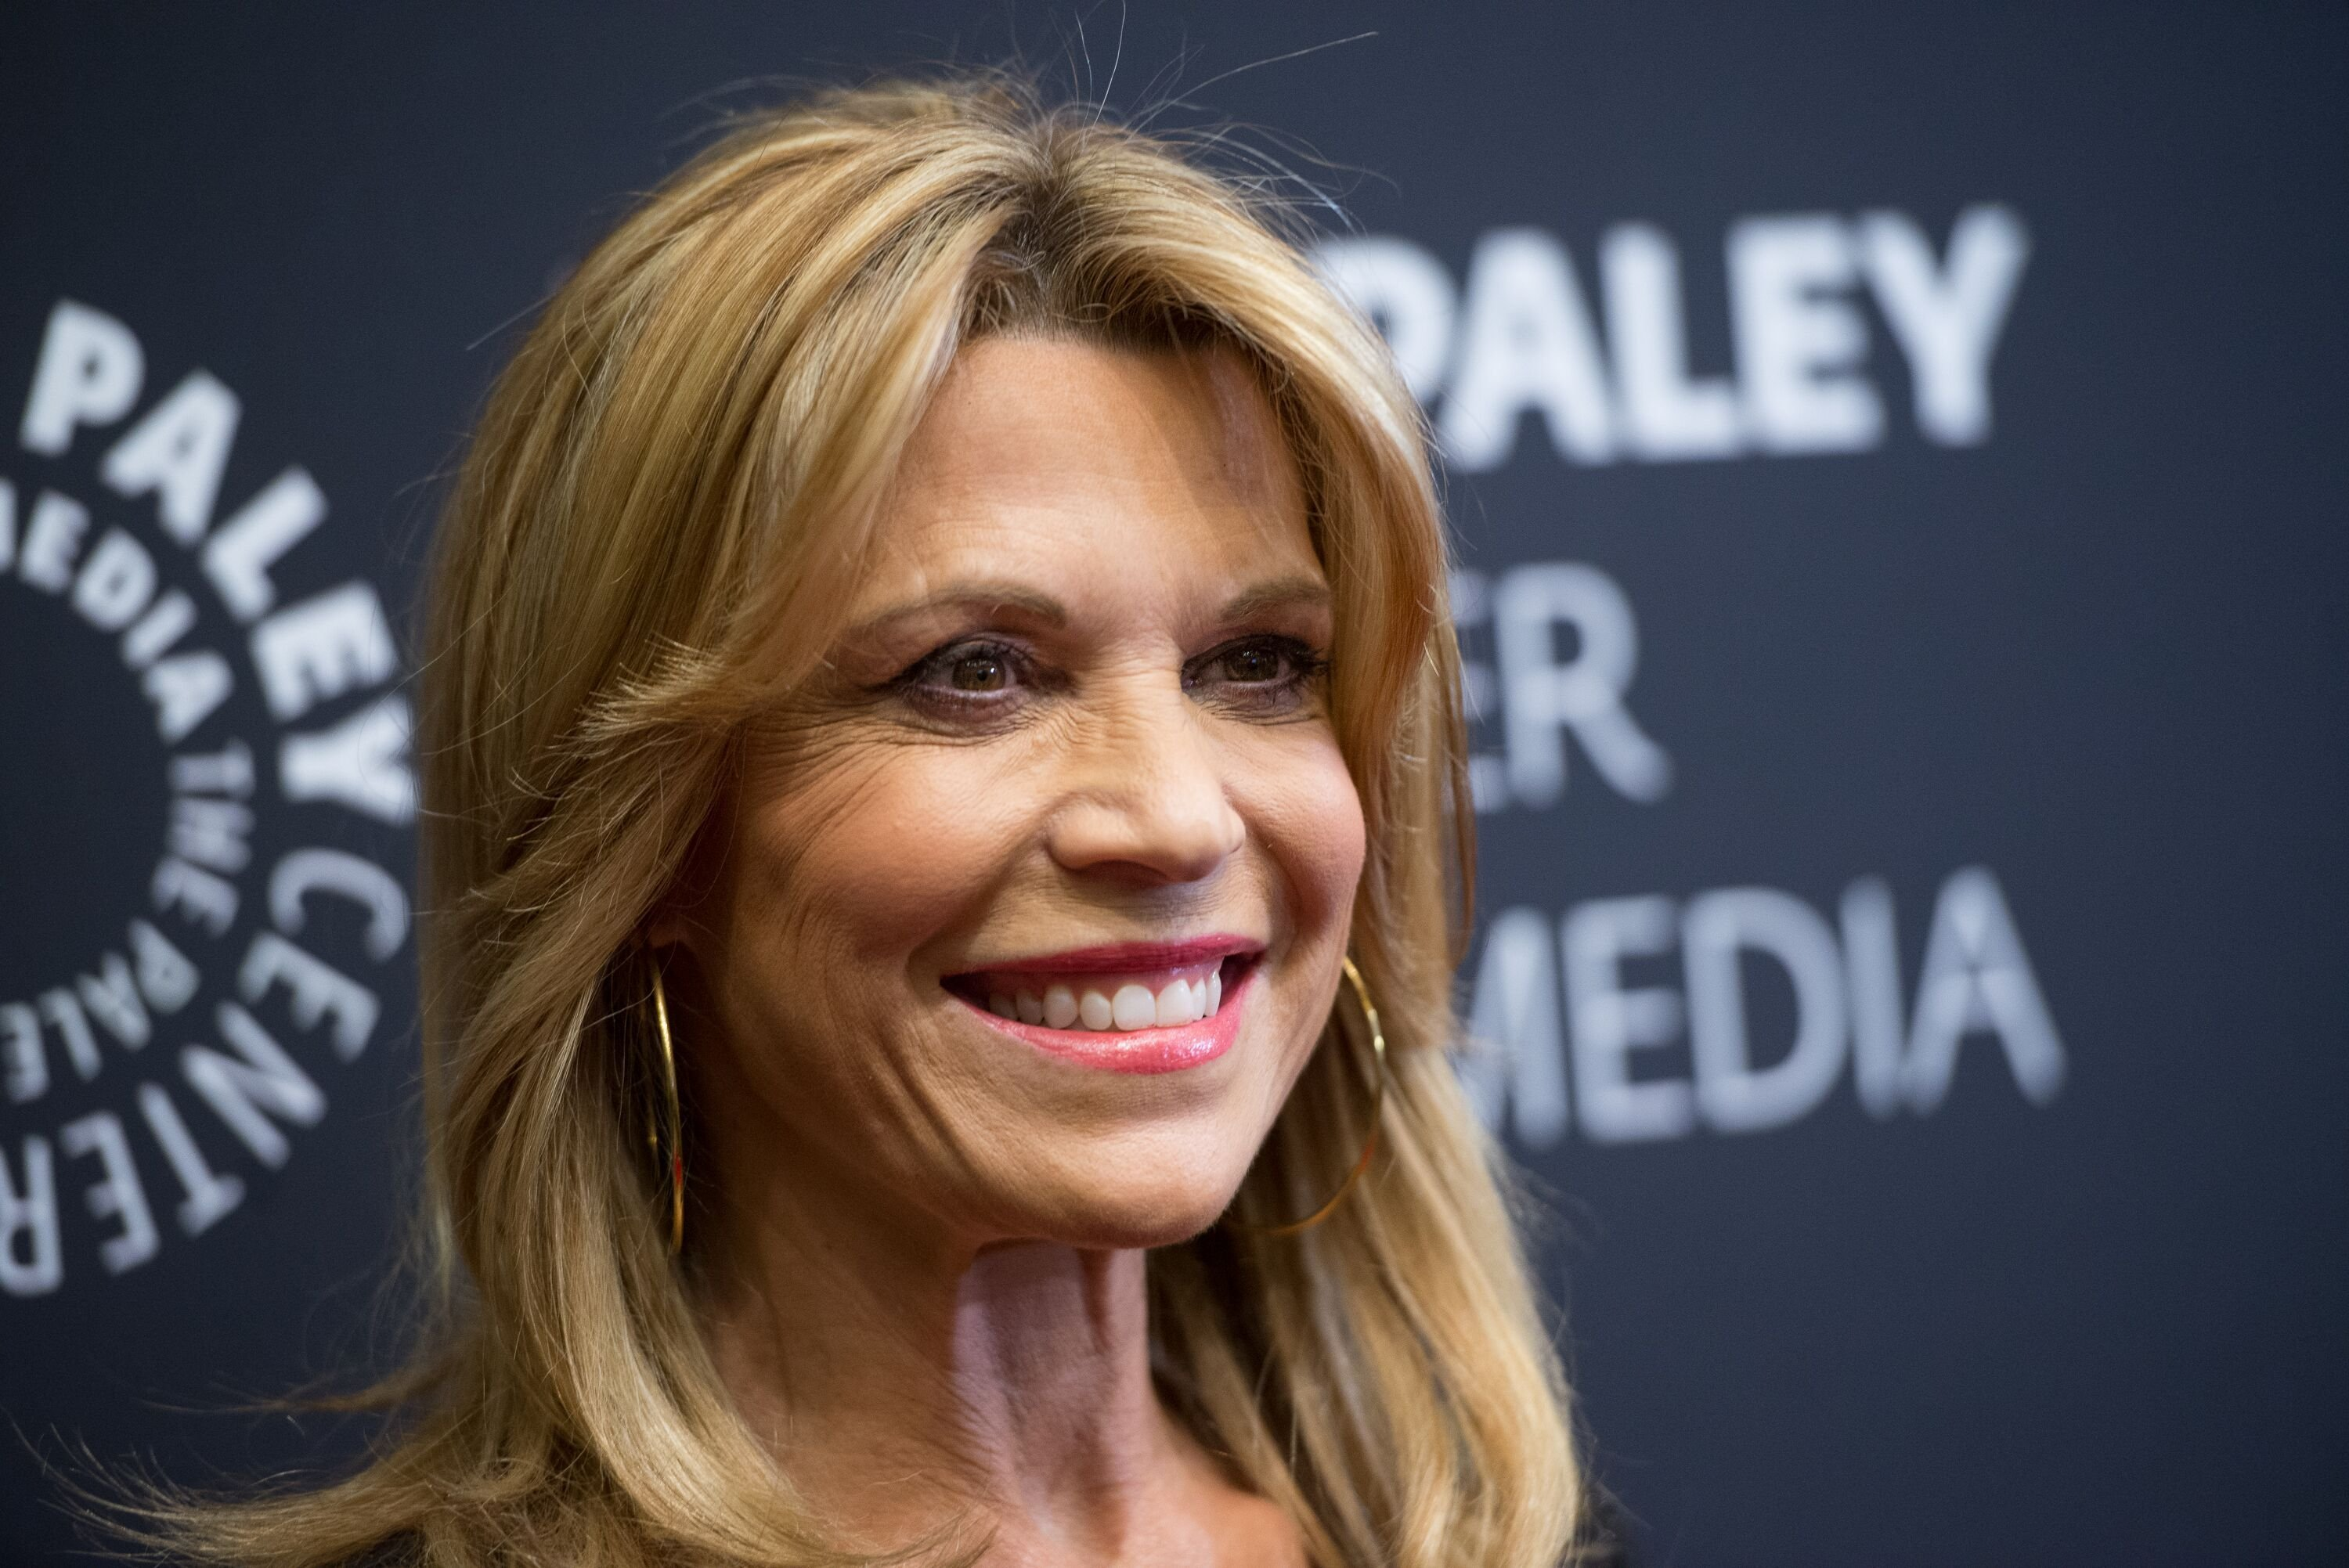 Vanna White attends The Paley Center For Media Presents: Wheel Of Fortune: 35 Years As America's Game at The Paley Center for Media l Getty Images